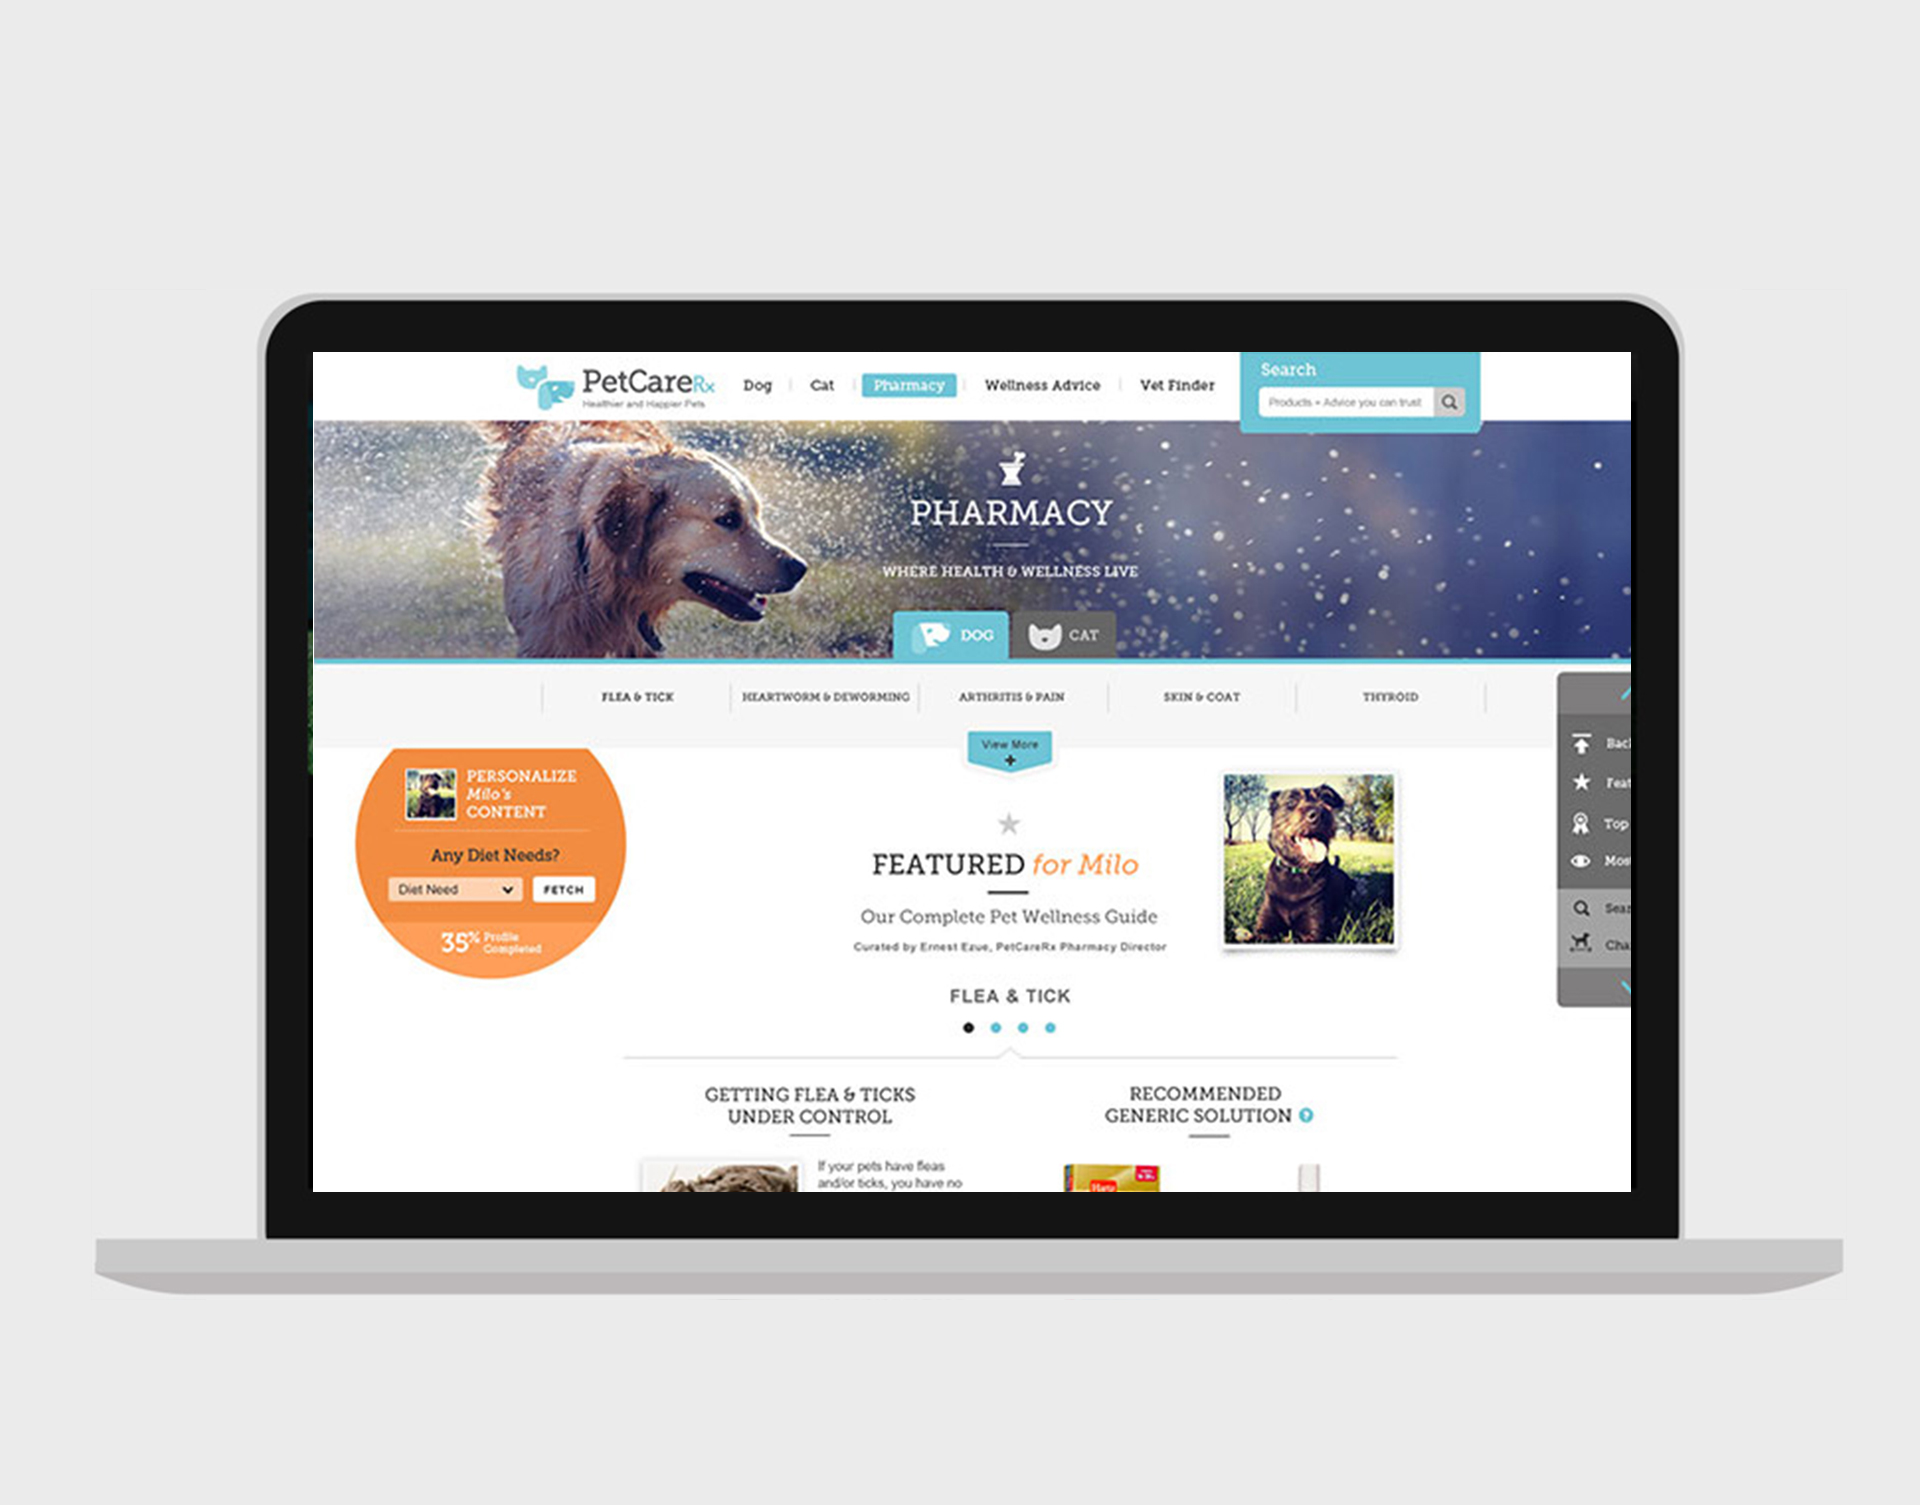 PETCARERX  REBRAND + SITE REDESIGN  Our mission was to overhaul the PetCareRx brand, revitalizing the identity and site of the leading online pet wellness and product retailer. We set out to create a full-service, one-stop destination for pet parents through personalization and automation.    READ MORE →